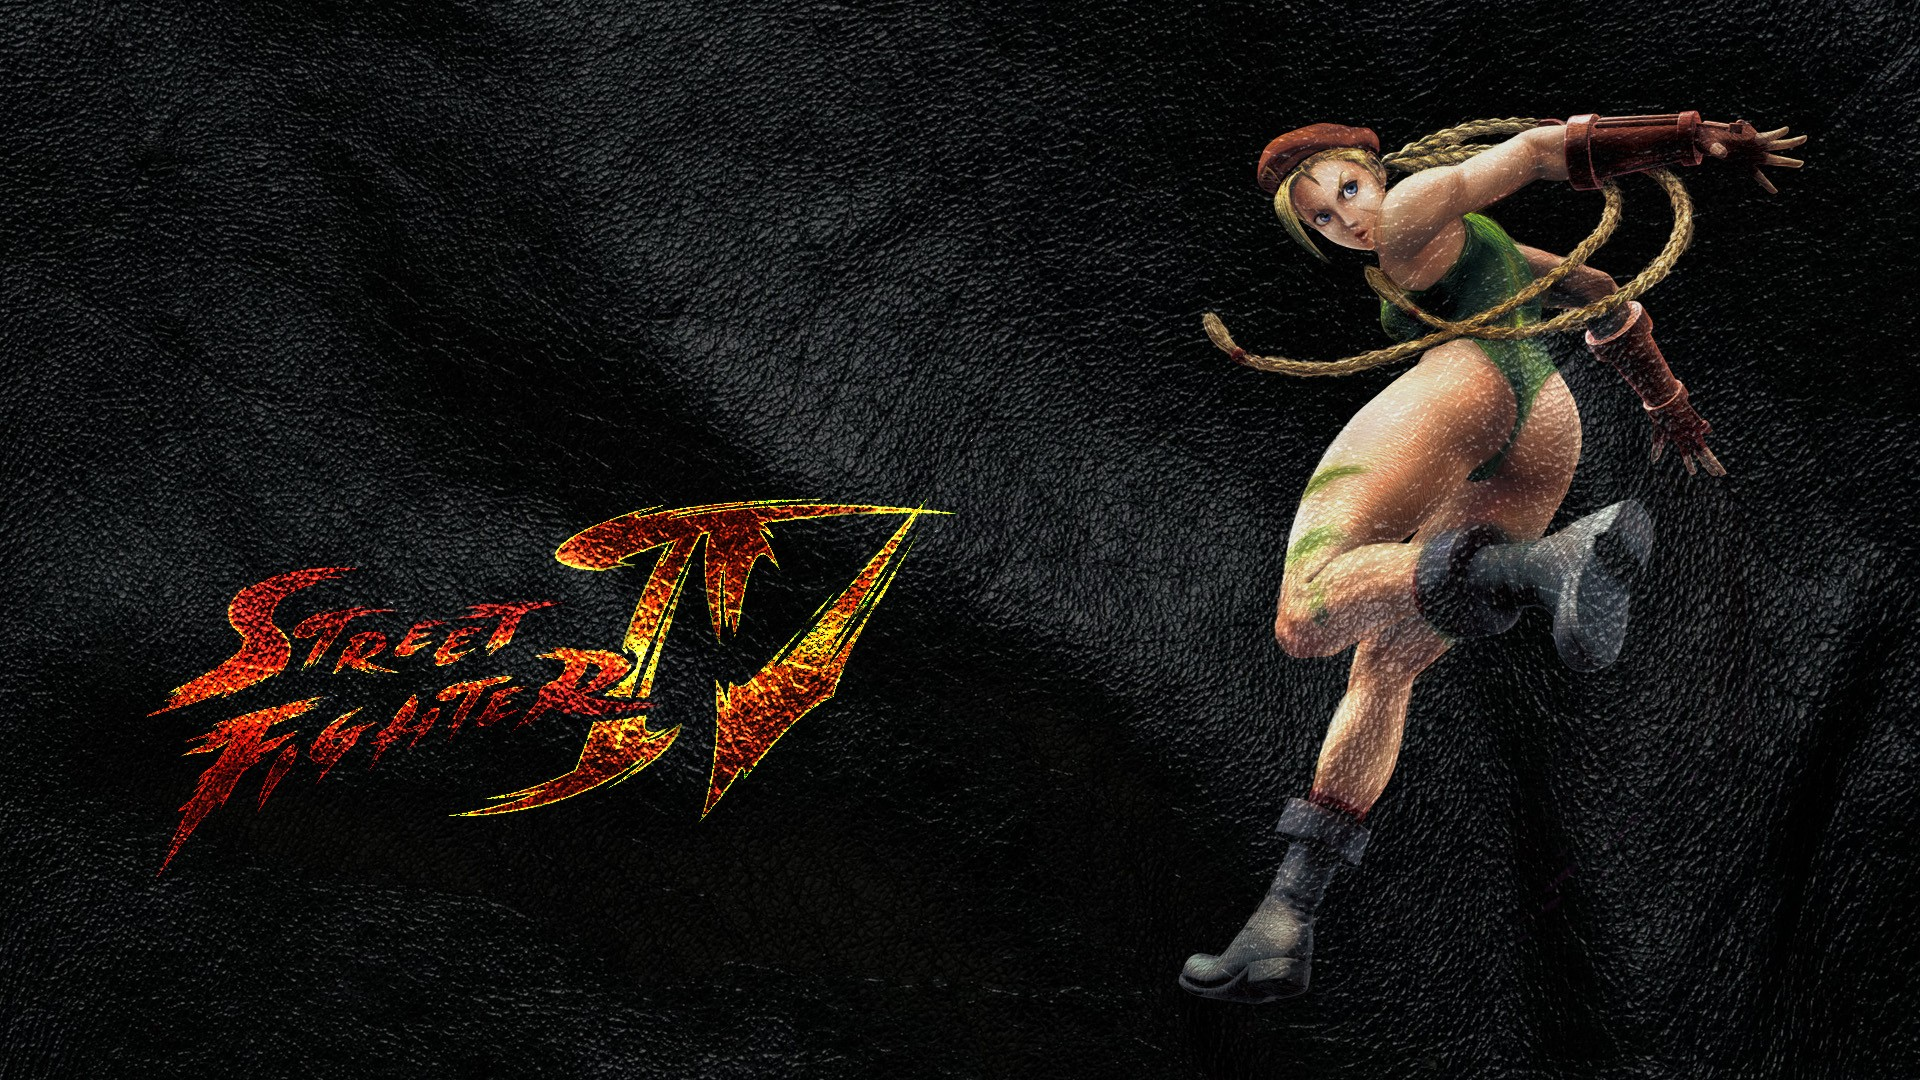 shadowloo street fighter wallpaper - photo #27